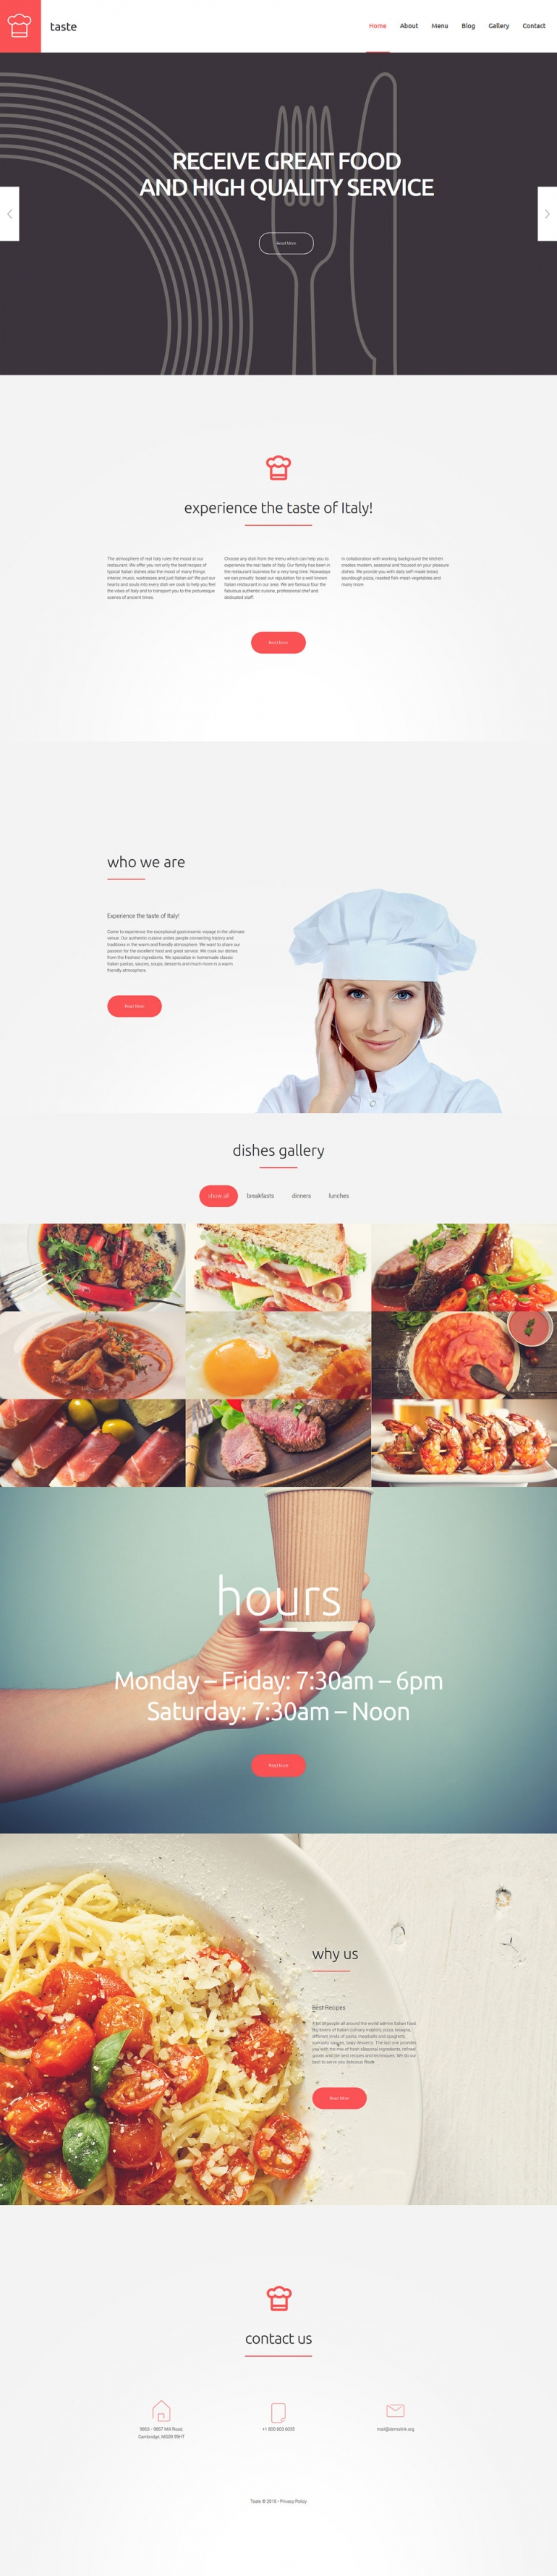 Food and Drink WordPress Theme